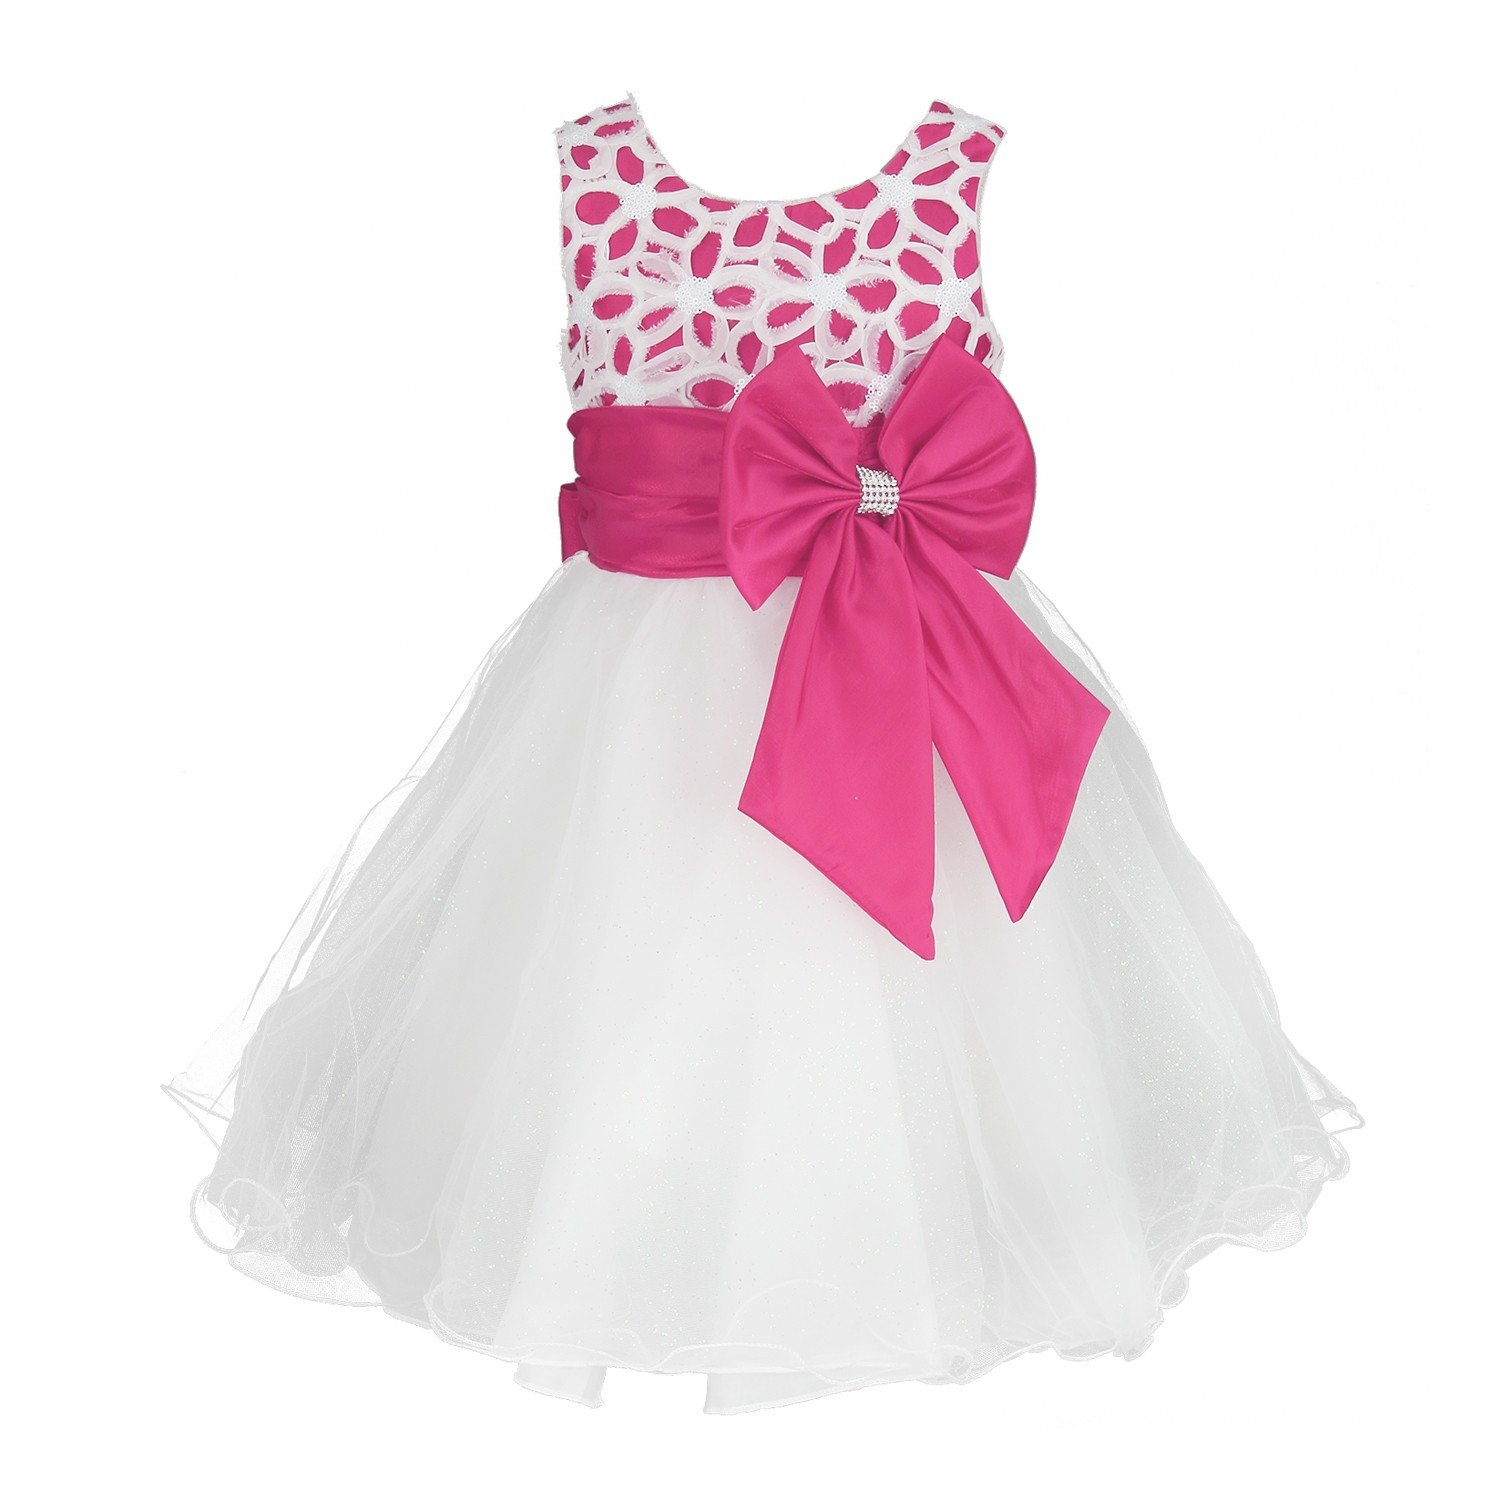 Girls flower formal wedding bridesmaid party christening dress girls flower formal wedding bridesmaid party christening dress children clothing girls lace dress princess dresses kid baby clothes age 2 12 years5 6years ombrellifo Choice Image